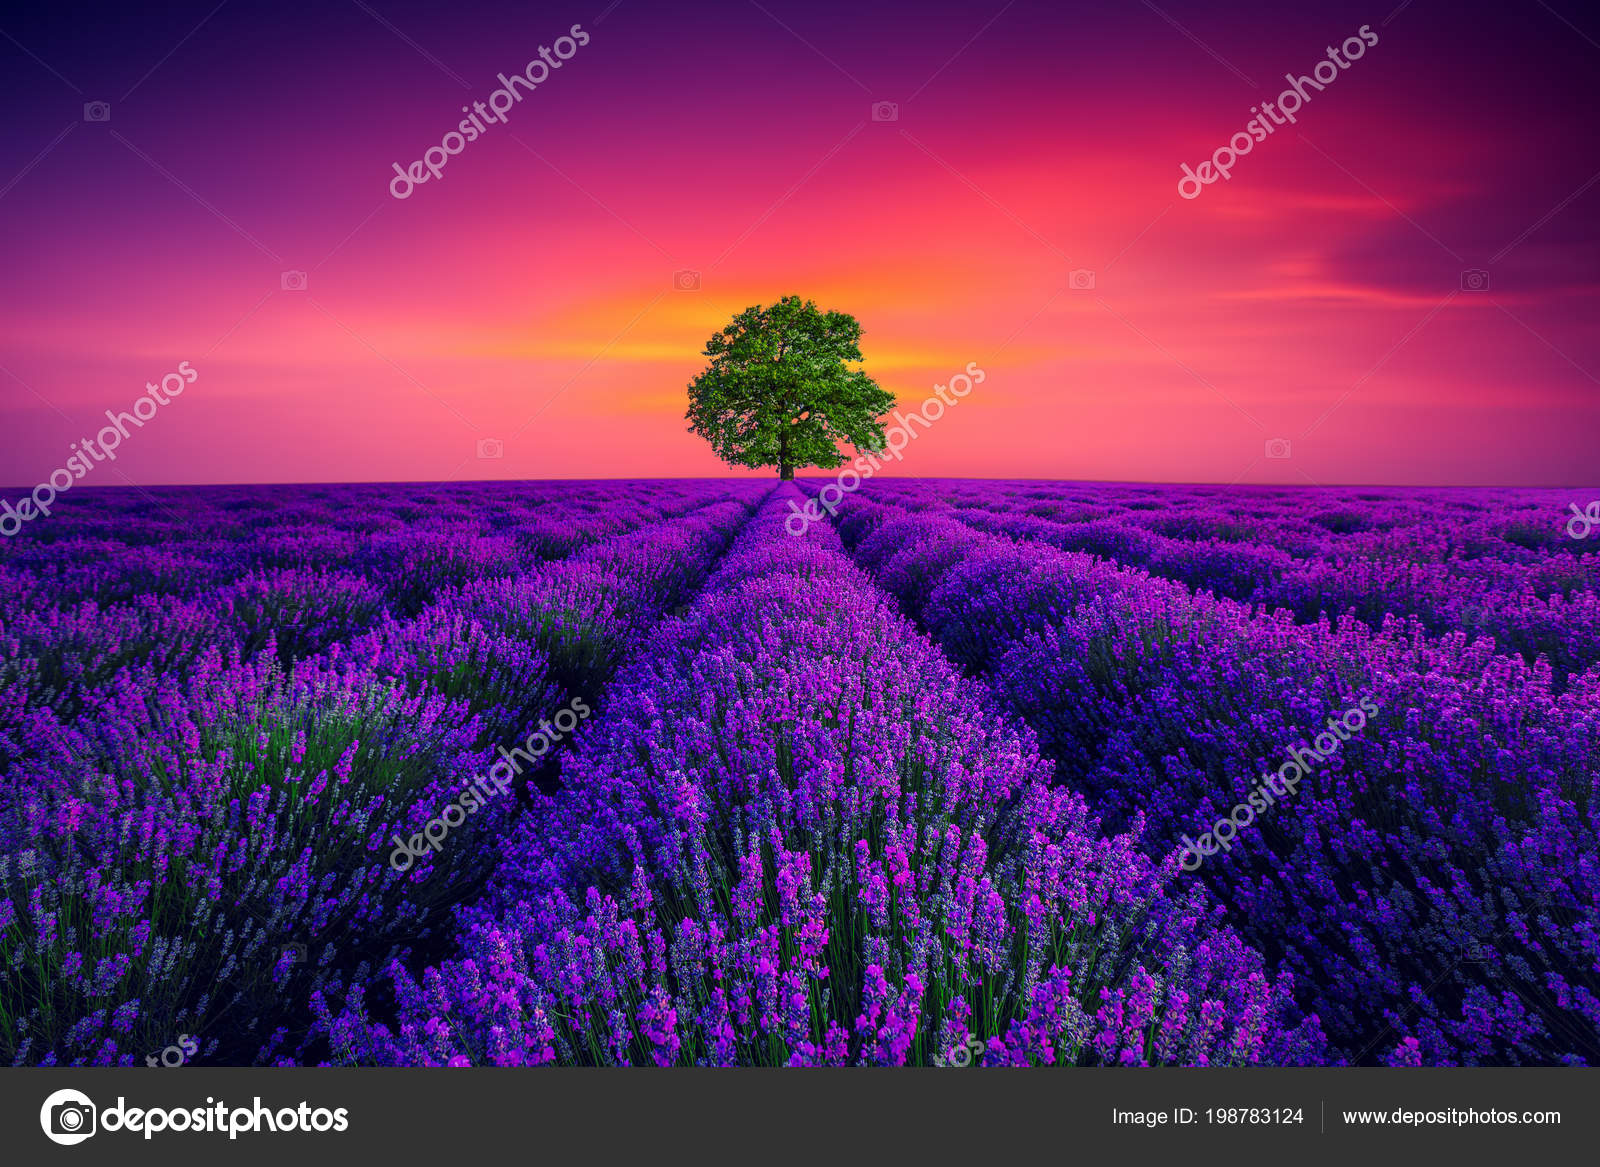 Tree Lavender Flower Blooming Scented Fields Endless Rows Stock